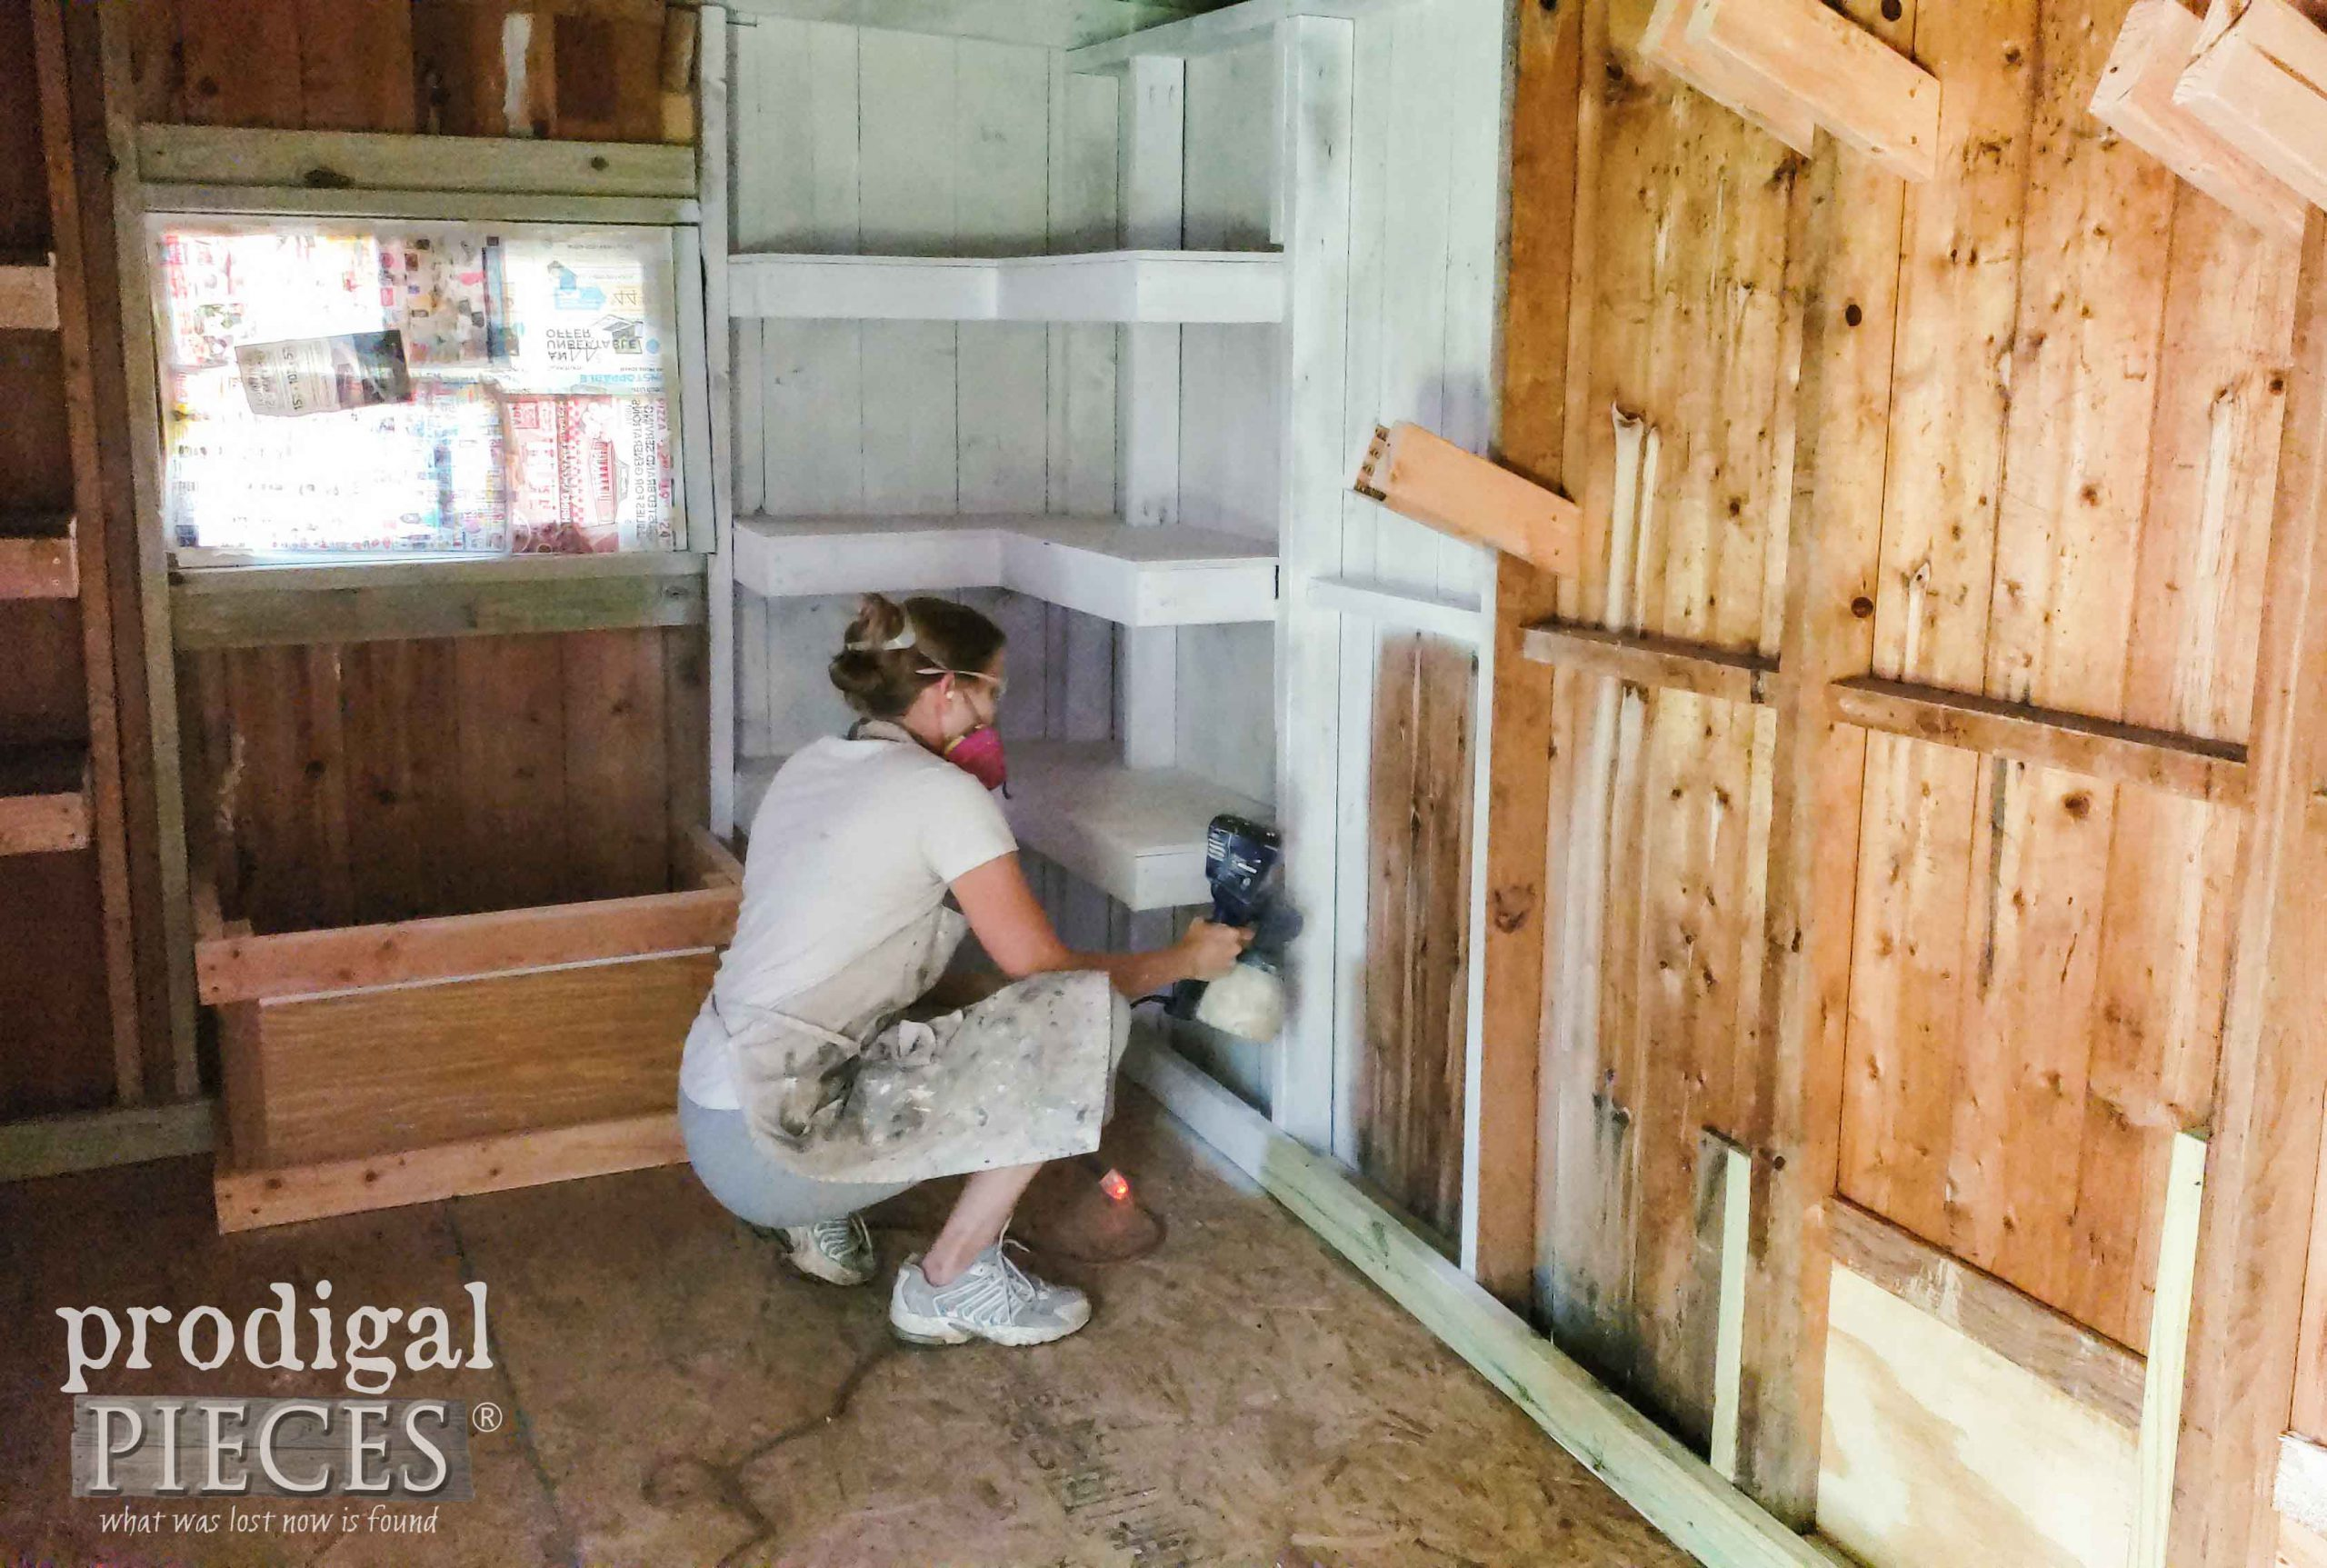 Spray Painting Garden Shed Walls | prodigalpieces.com #prodigalpieces